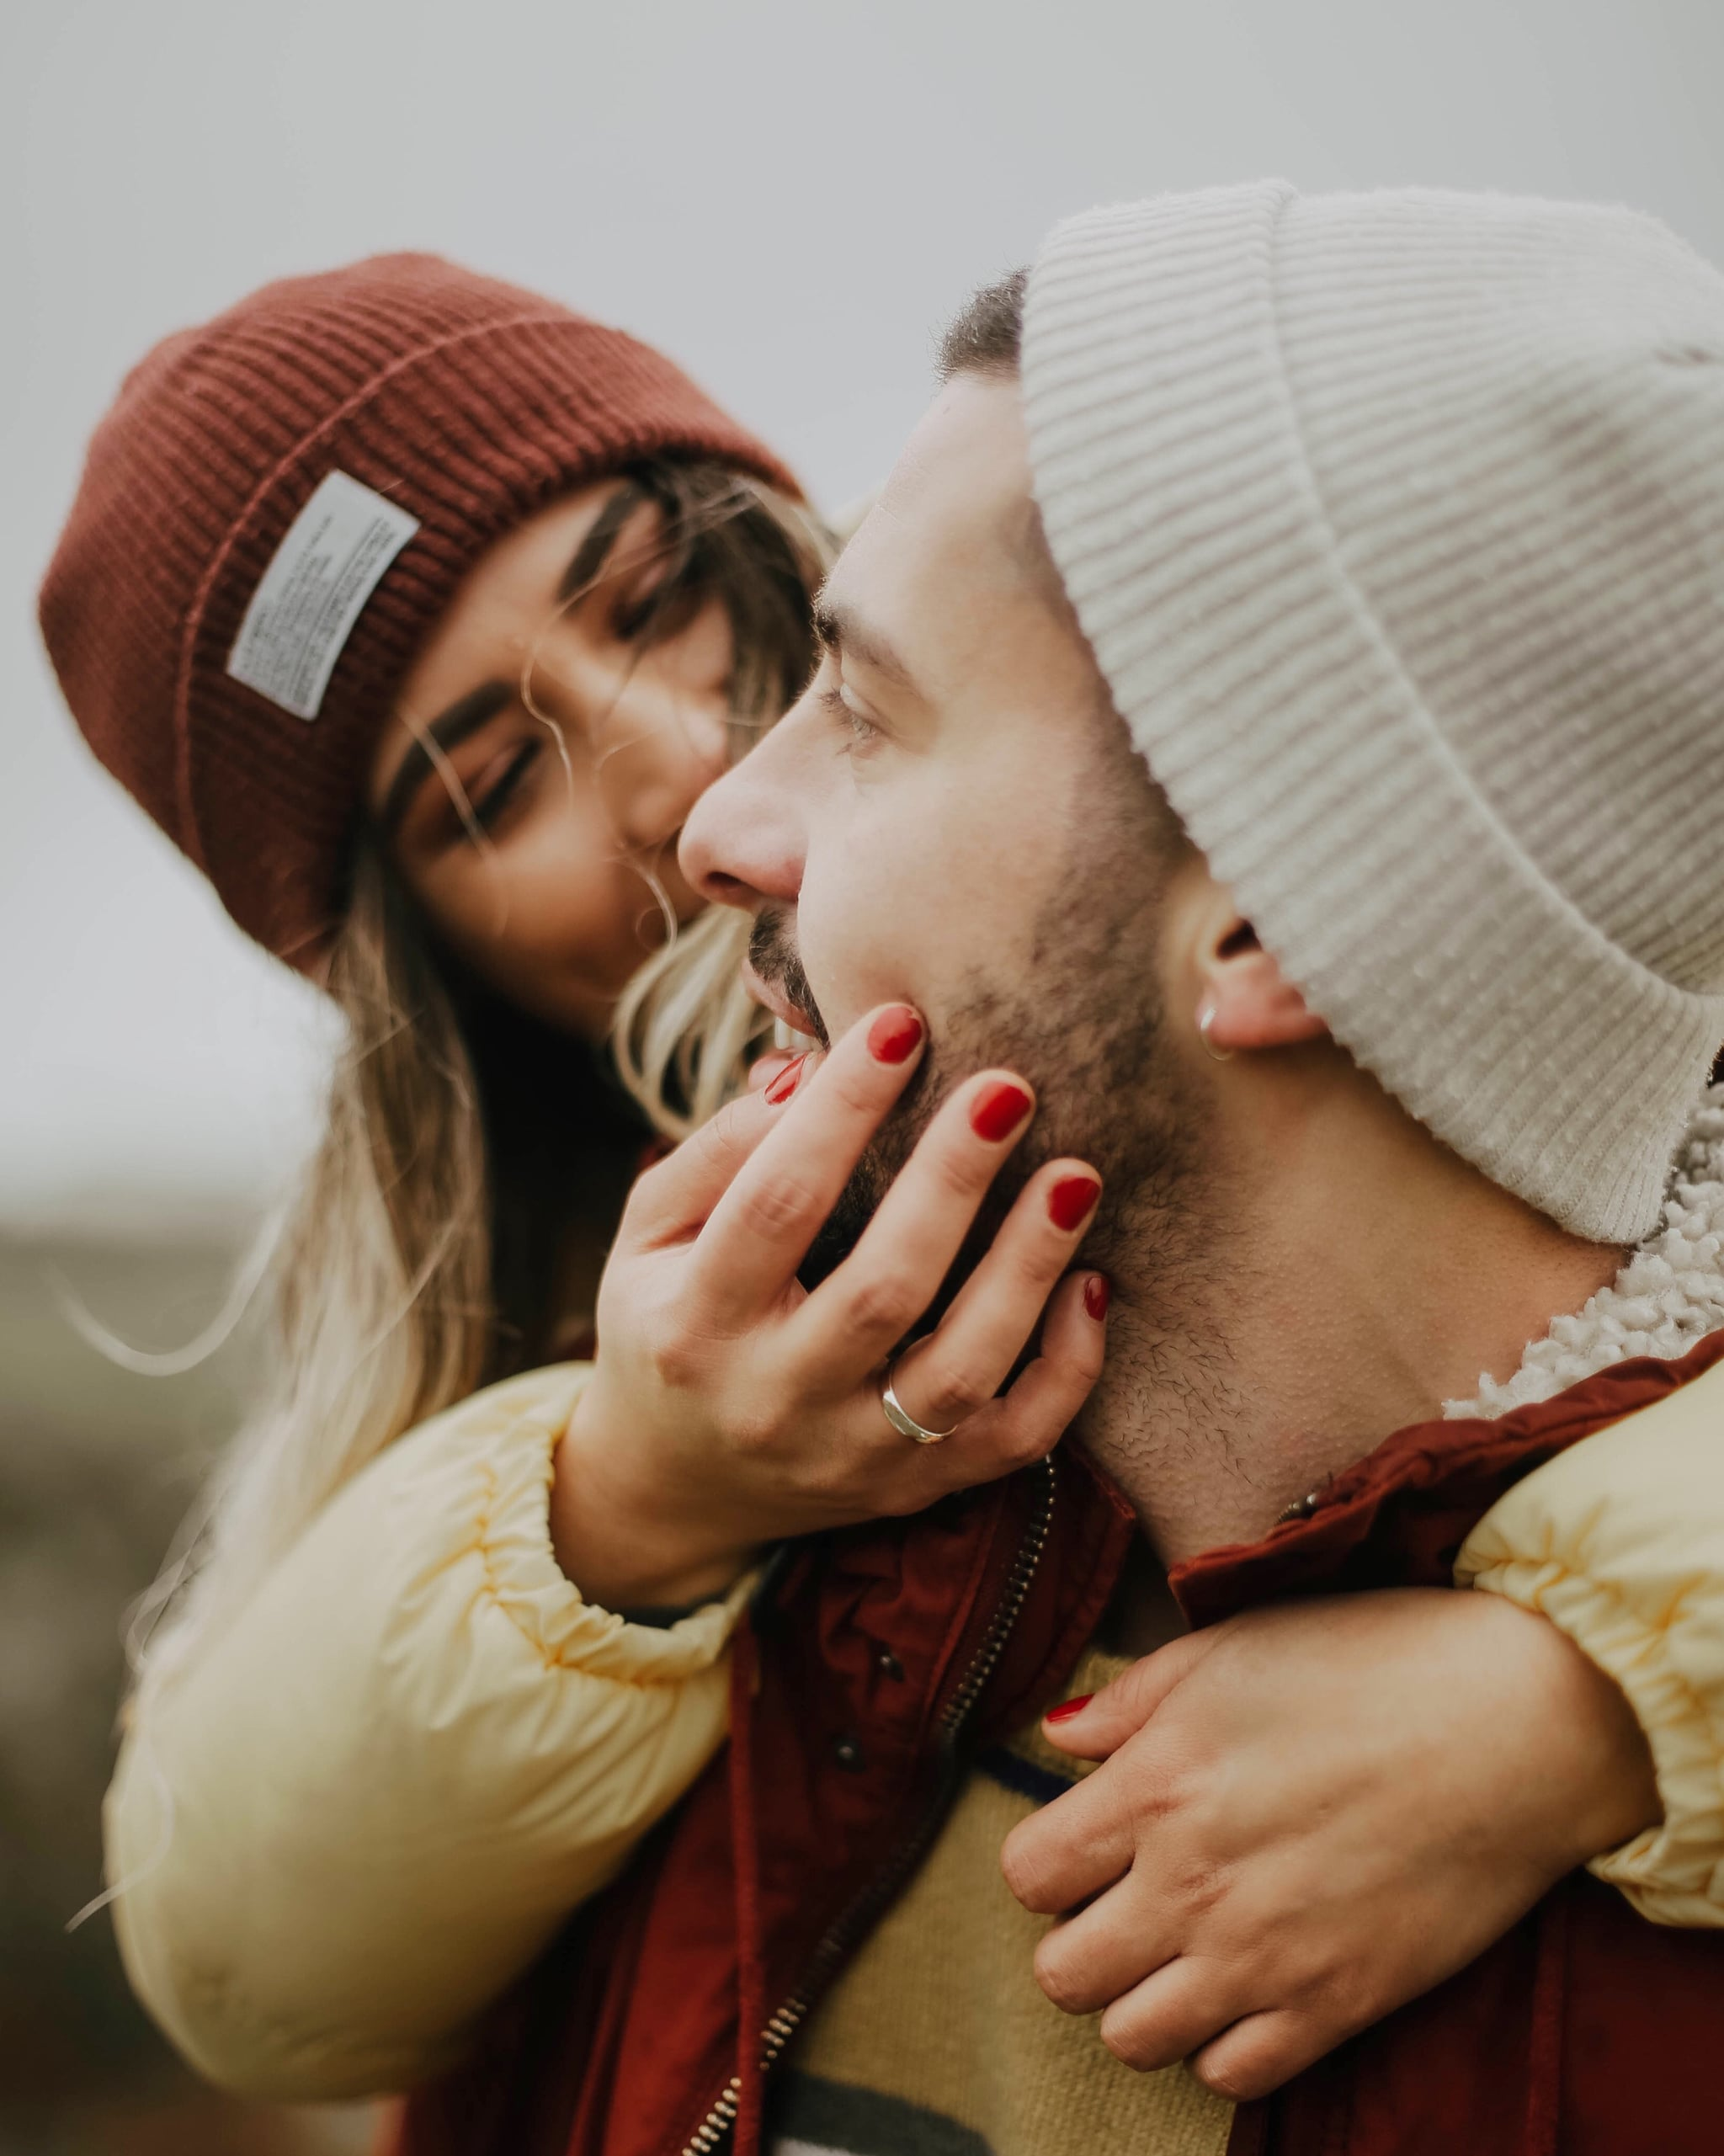 I Switched From Wine to Weed and It Improved My Relationship